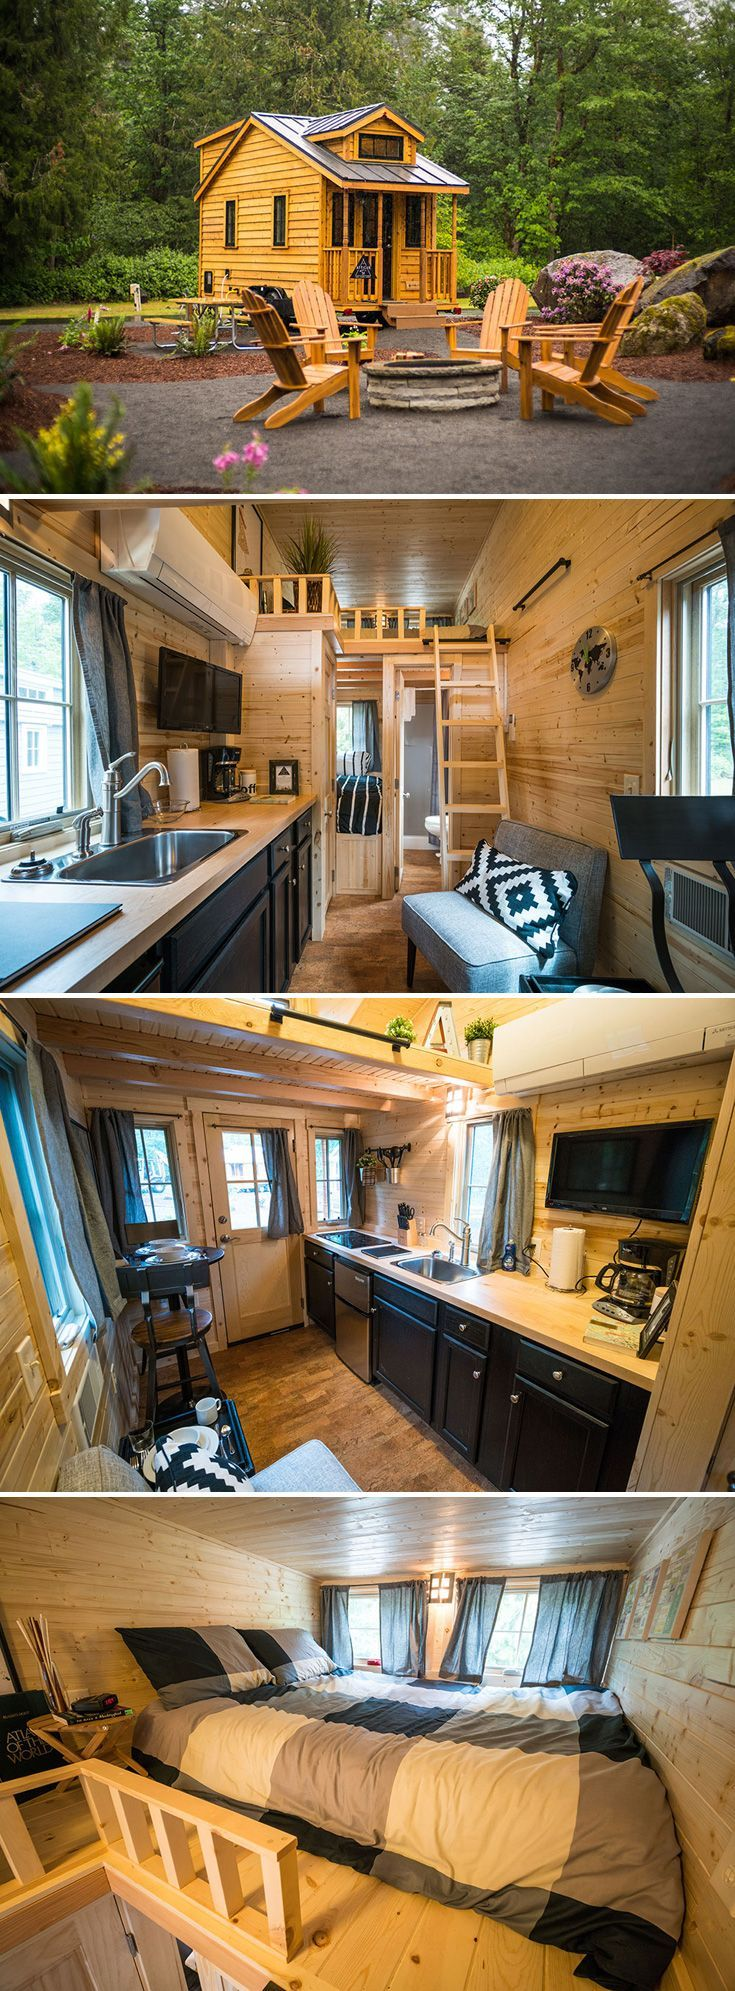 cool A rugged, modern-style 178 sq.ft. tiny house crafted with cedar plank siding and... by http://www.danaz-home-decor.xyz/tiny-homes/a-rugged-modern-style-178-sq-ft-tiny-house-crafted-with-cedar-plank-siding-and/